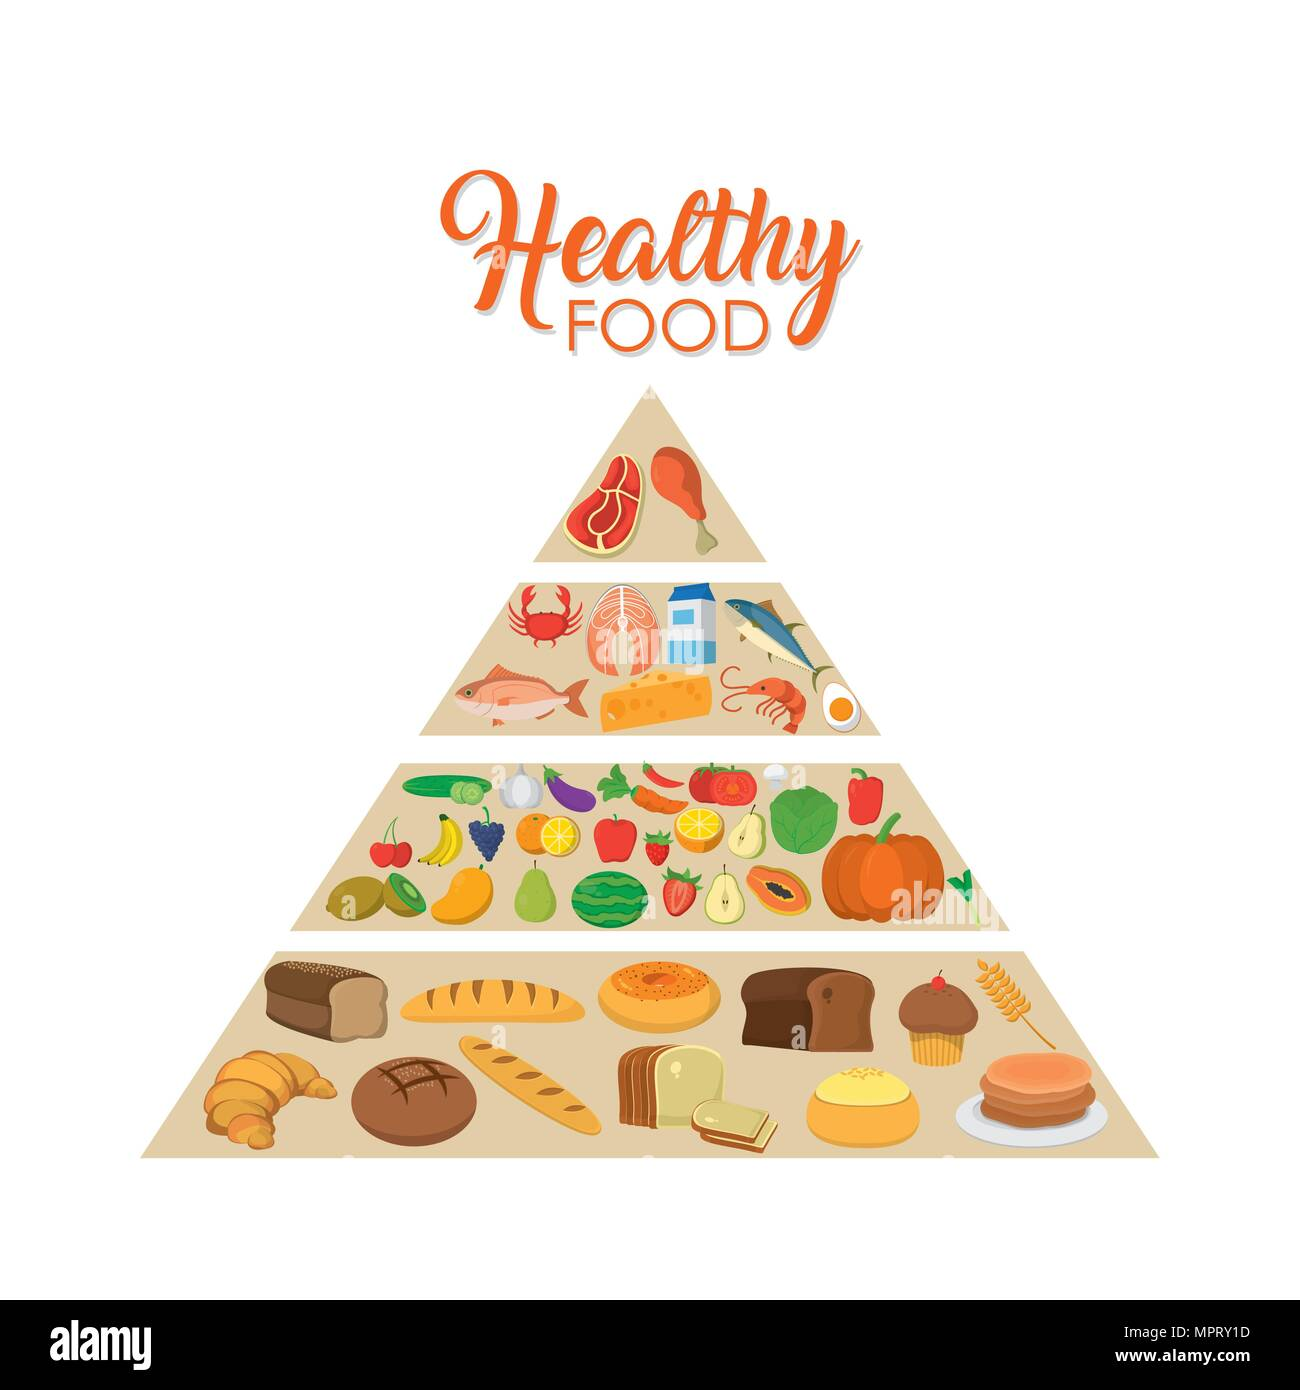 Healthy Food Pyramid Stock Vector Art Amp Illustration